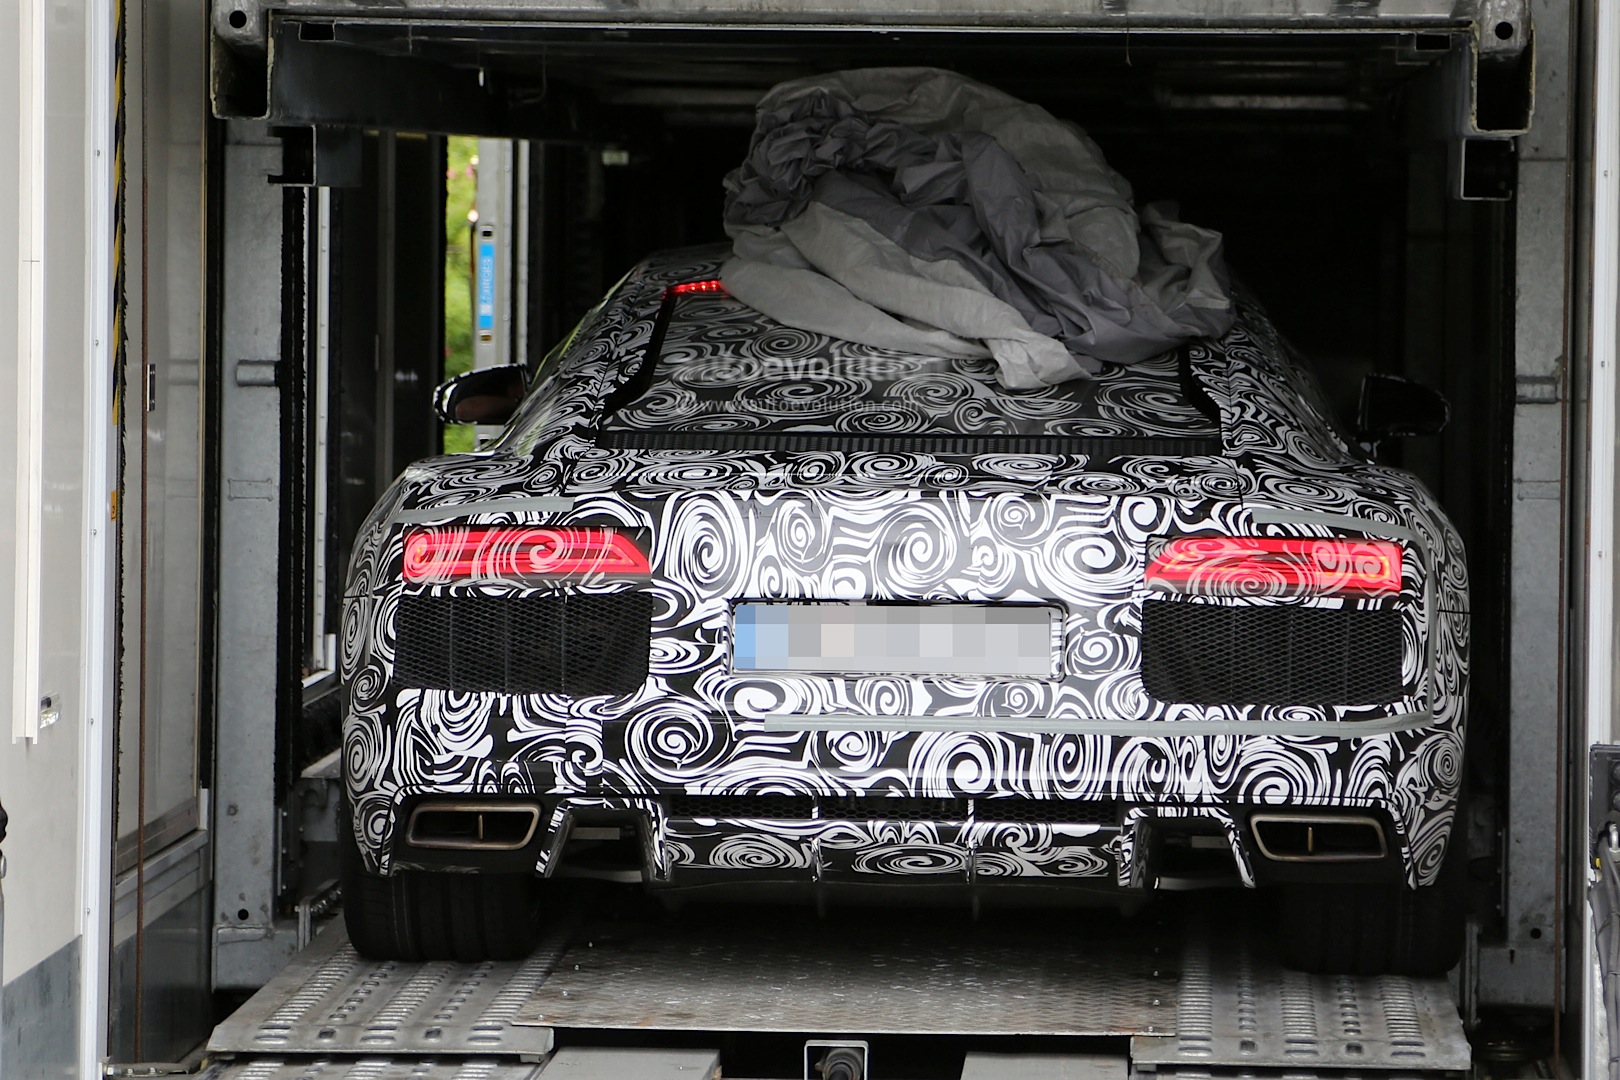 2015 - [Audi] R8 II / R8 II Spider - Page 2 2016-audi-r8-new-led-taillights-spied-in-detail_7